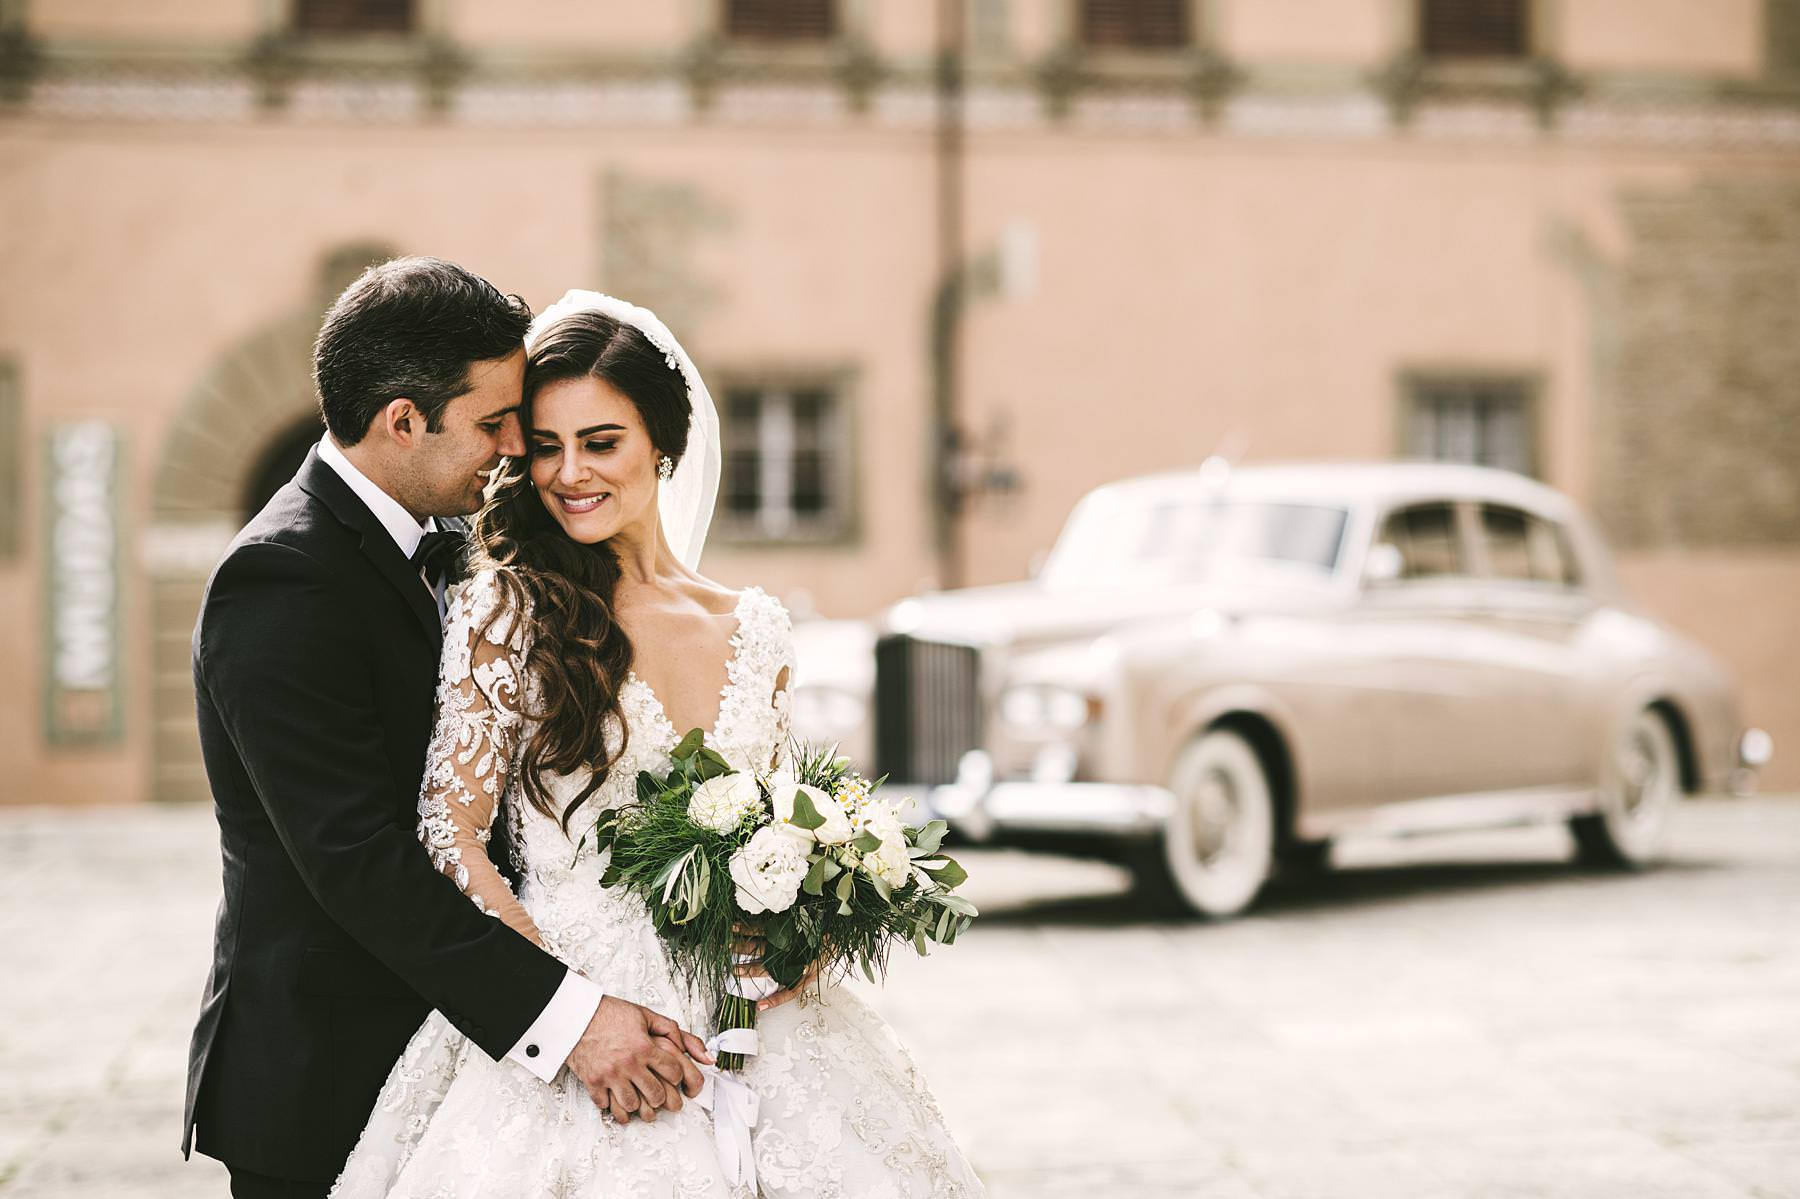 Romantic and elegant wedding portrait in Tuscany near the Cathedral of Arezzo